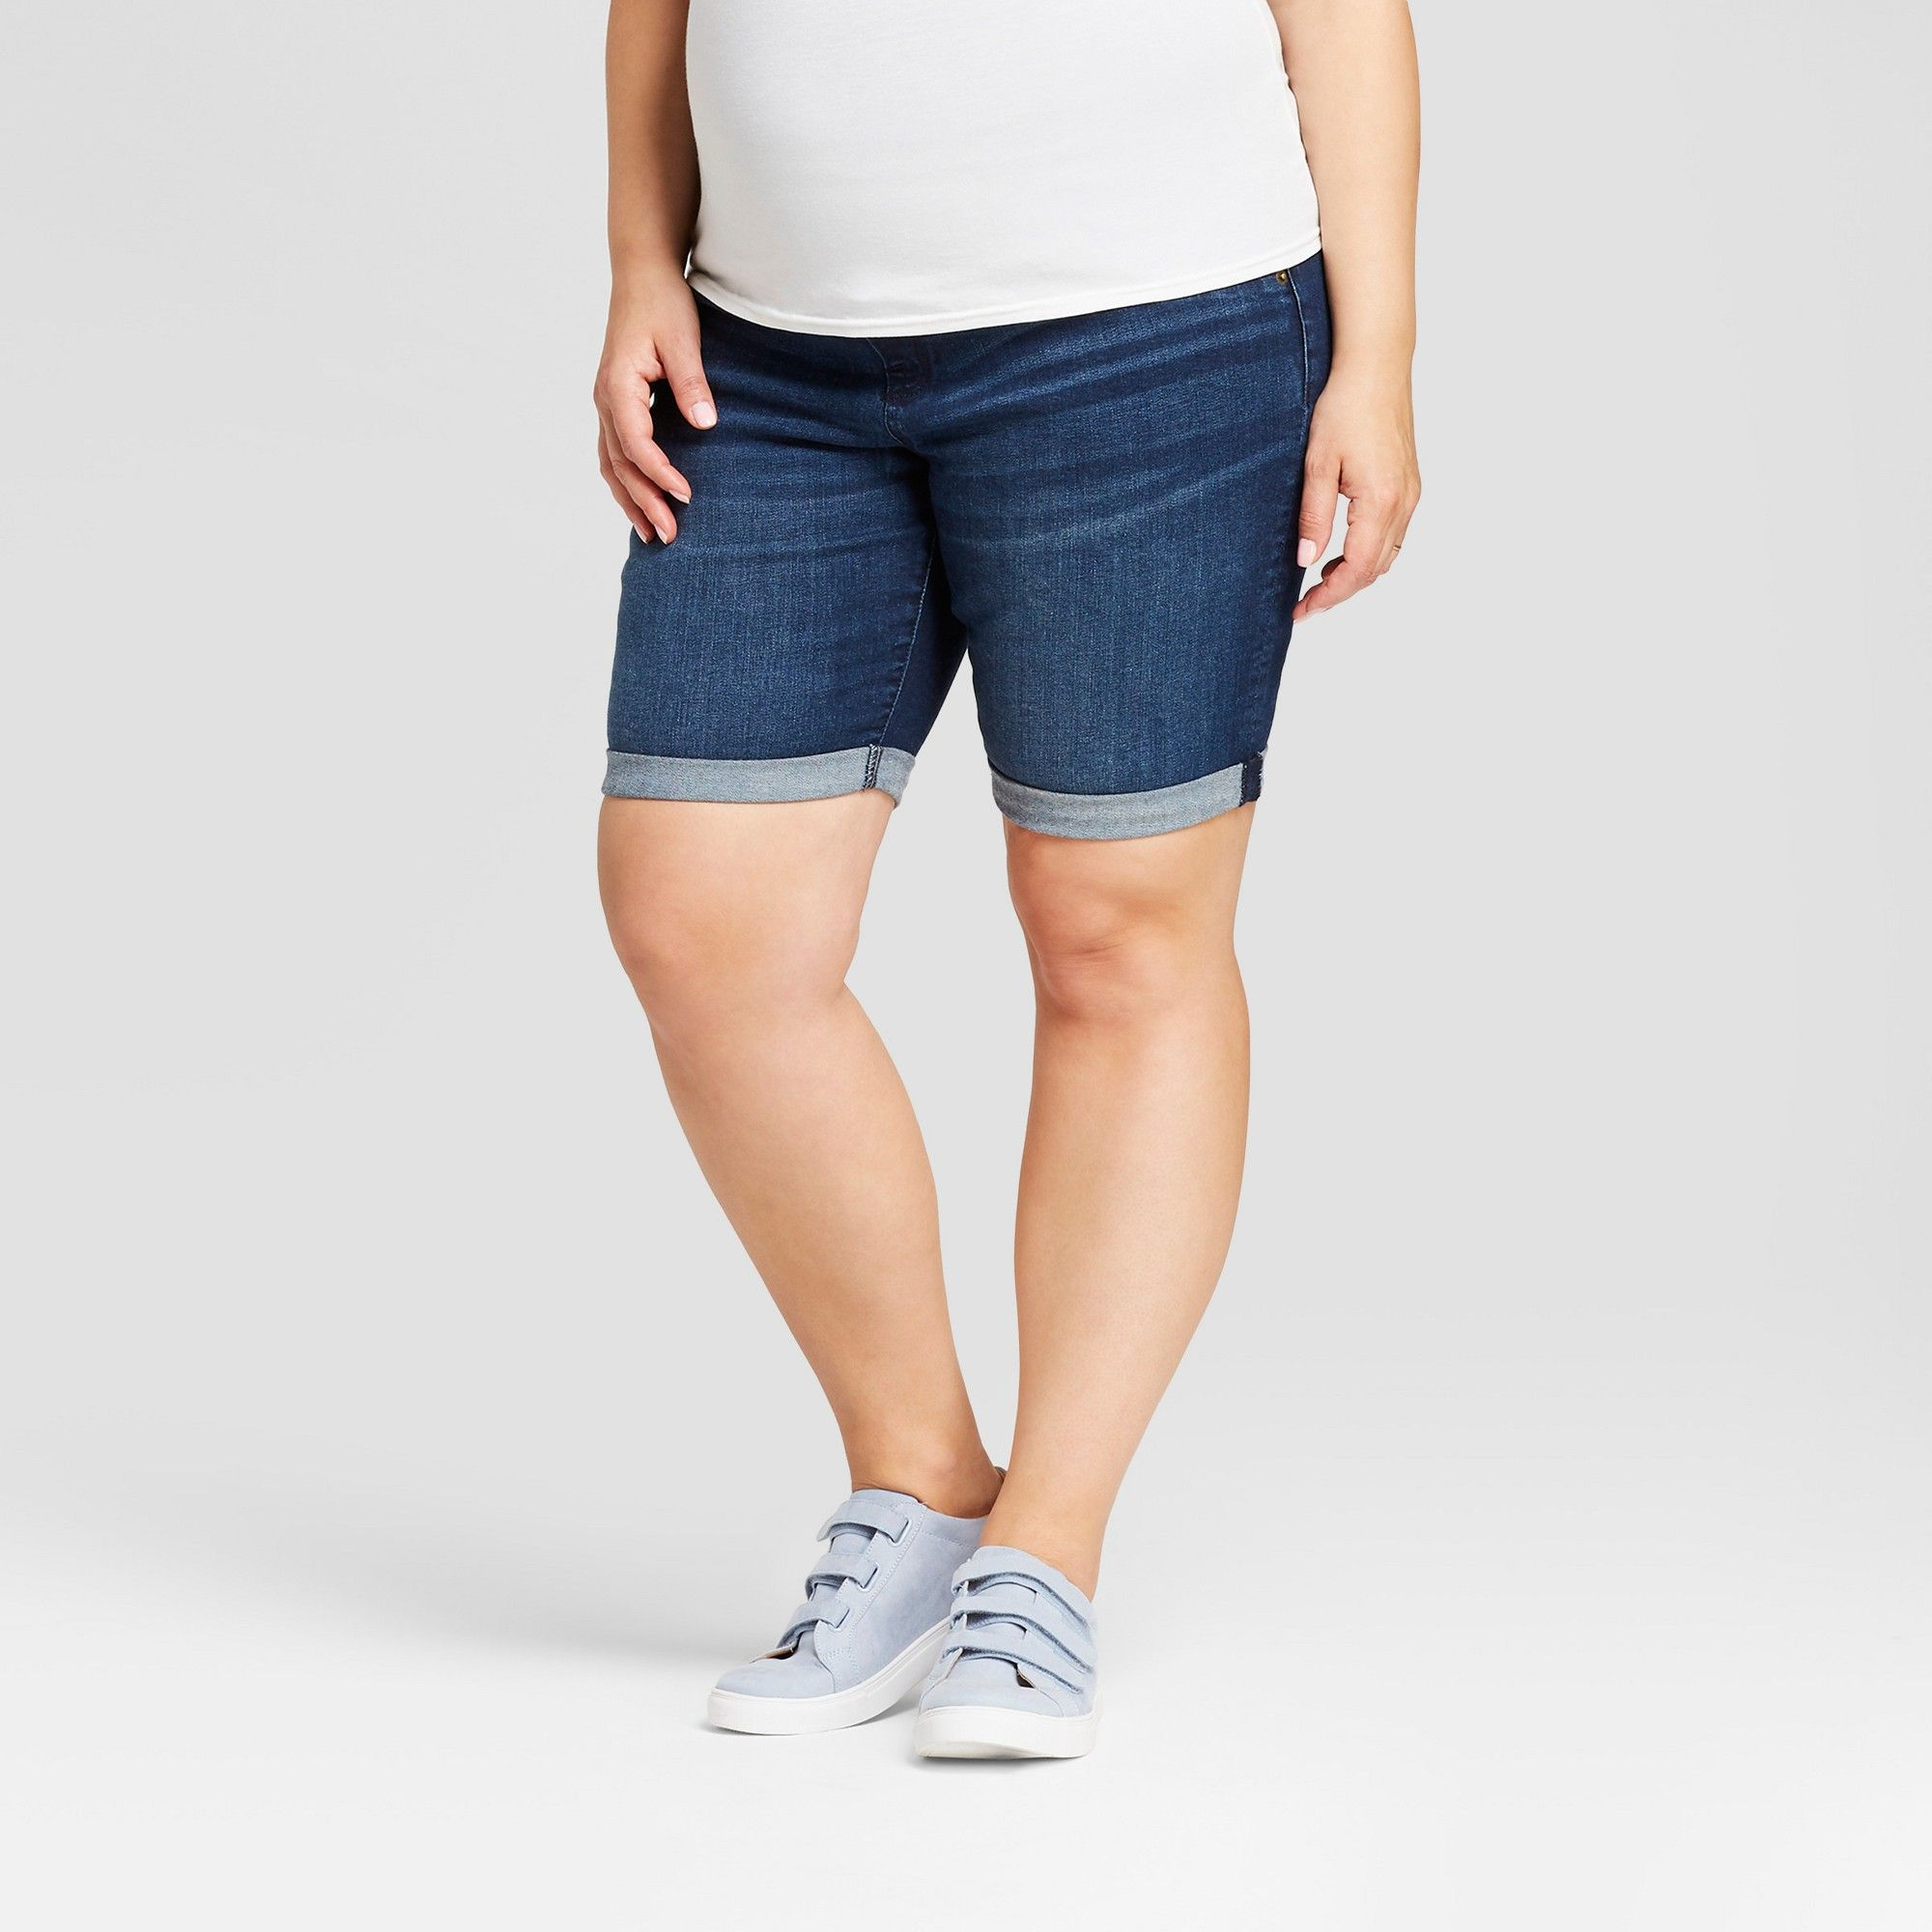 ce6e97dc3af83 Maternity Plus Size Crossover Panel Bermuda Shorts - Isabel Maternity by  Ingrid & Isabel Dark Wash 22W, Women's, Blue